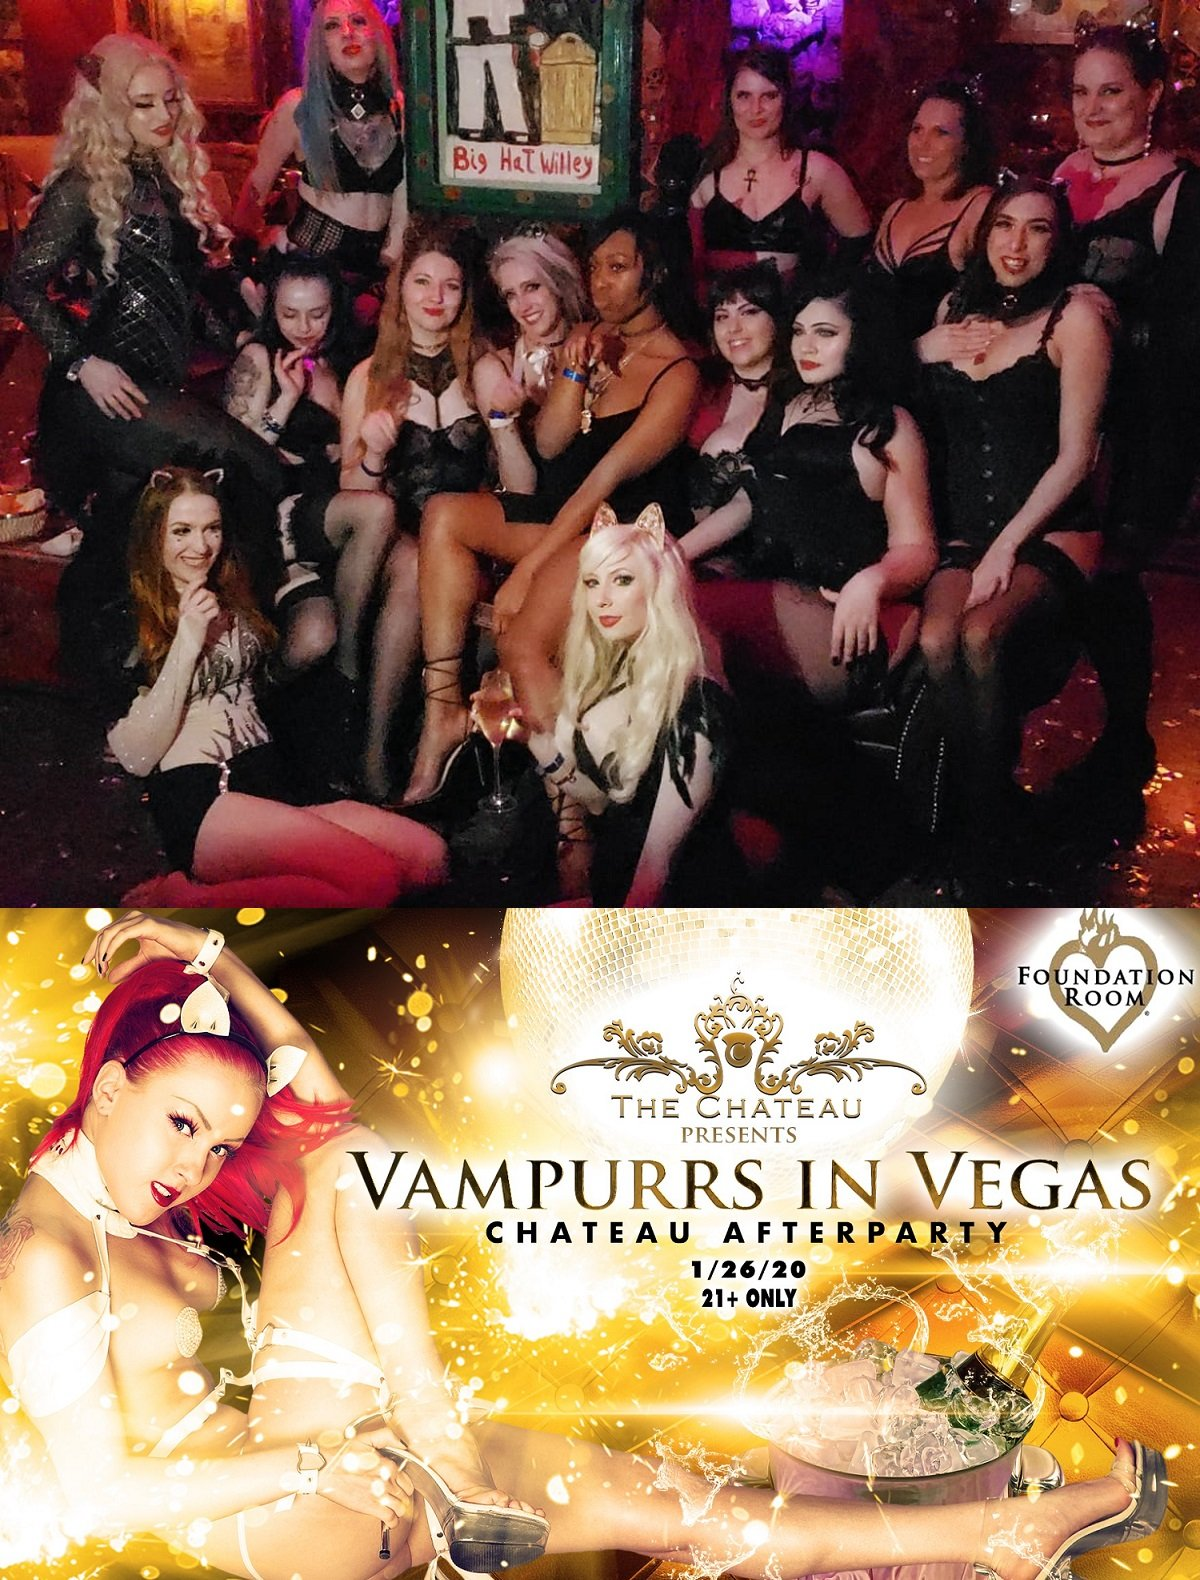 Vampurrs in Vegas! post thumbnail